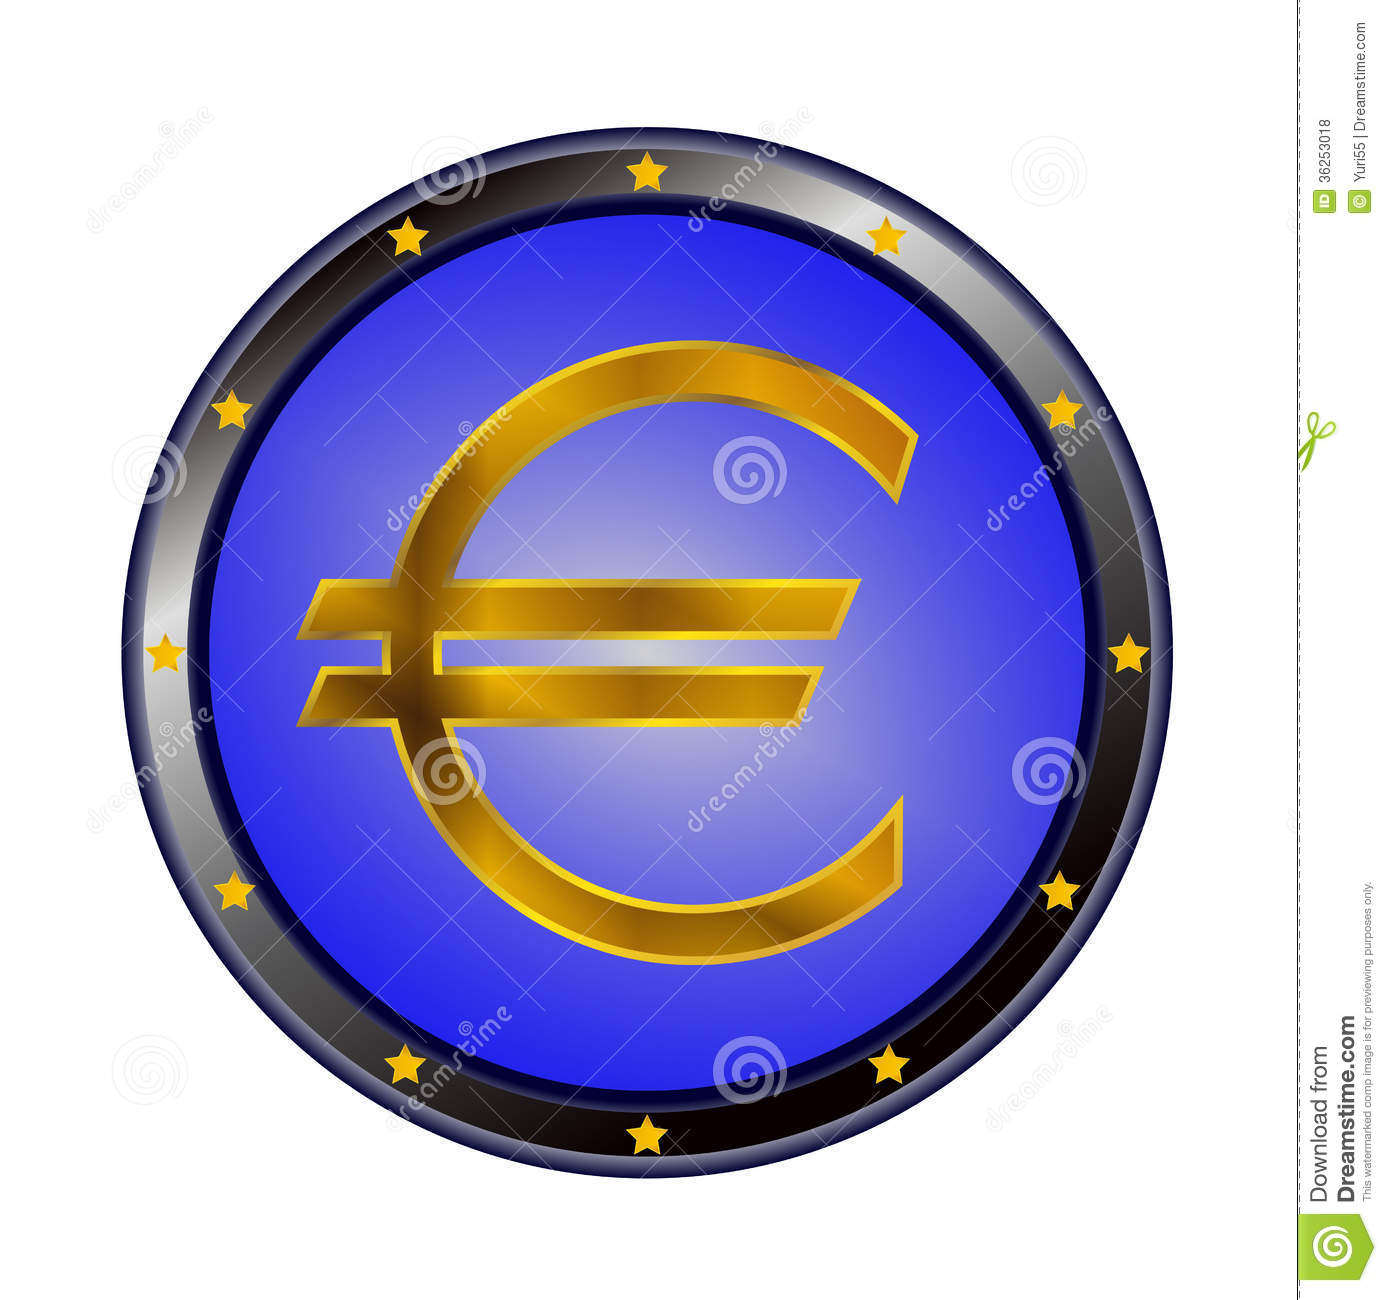 Preview Of The Euro Sign Stock Vector Illustration Of Euro 36253018